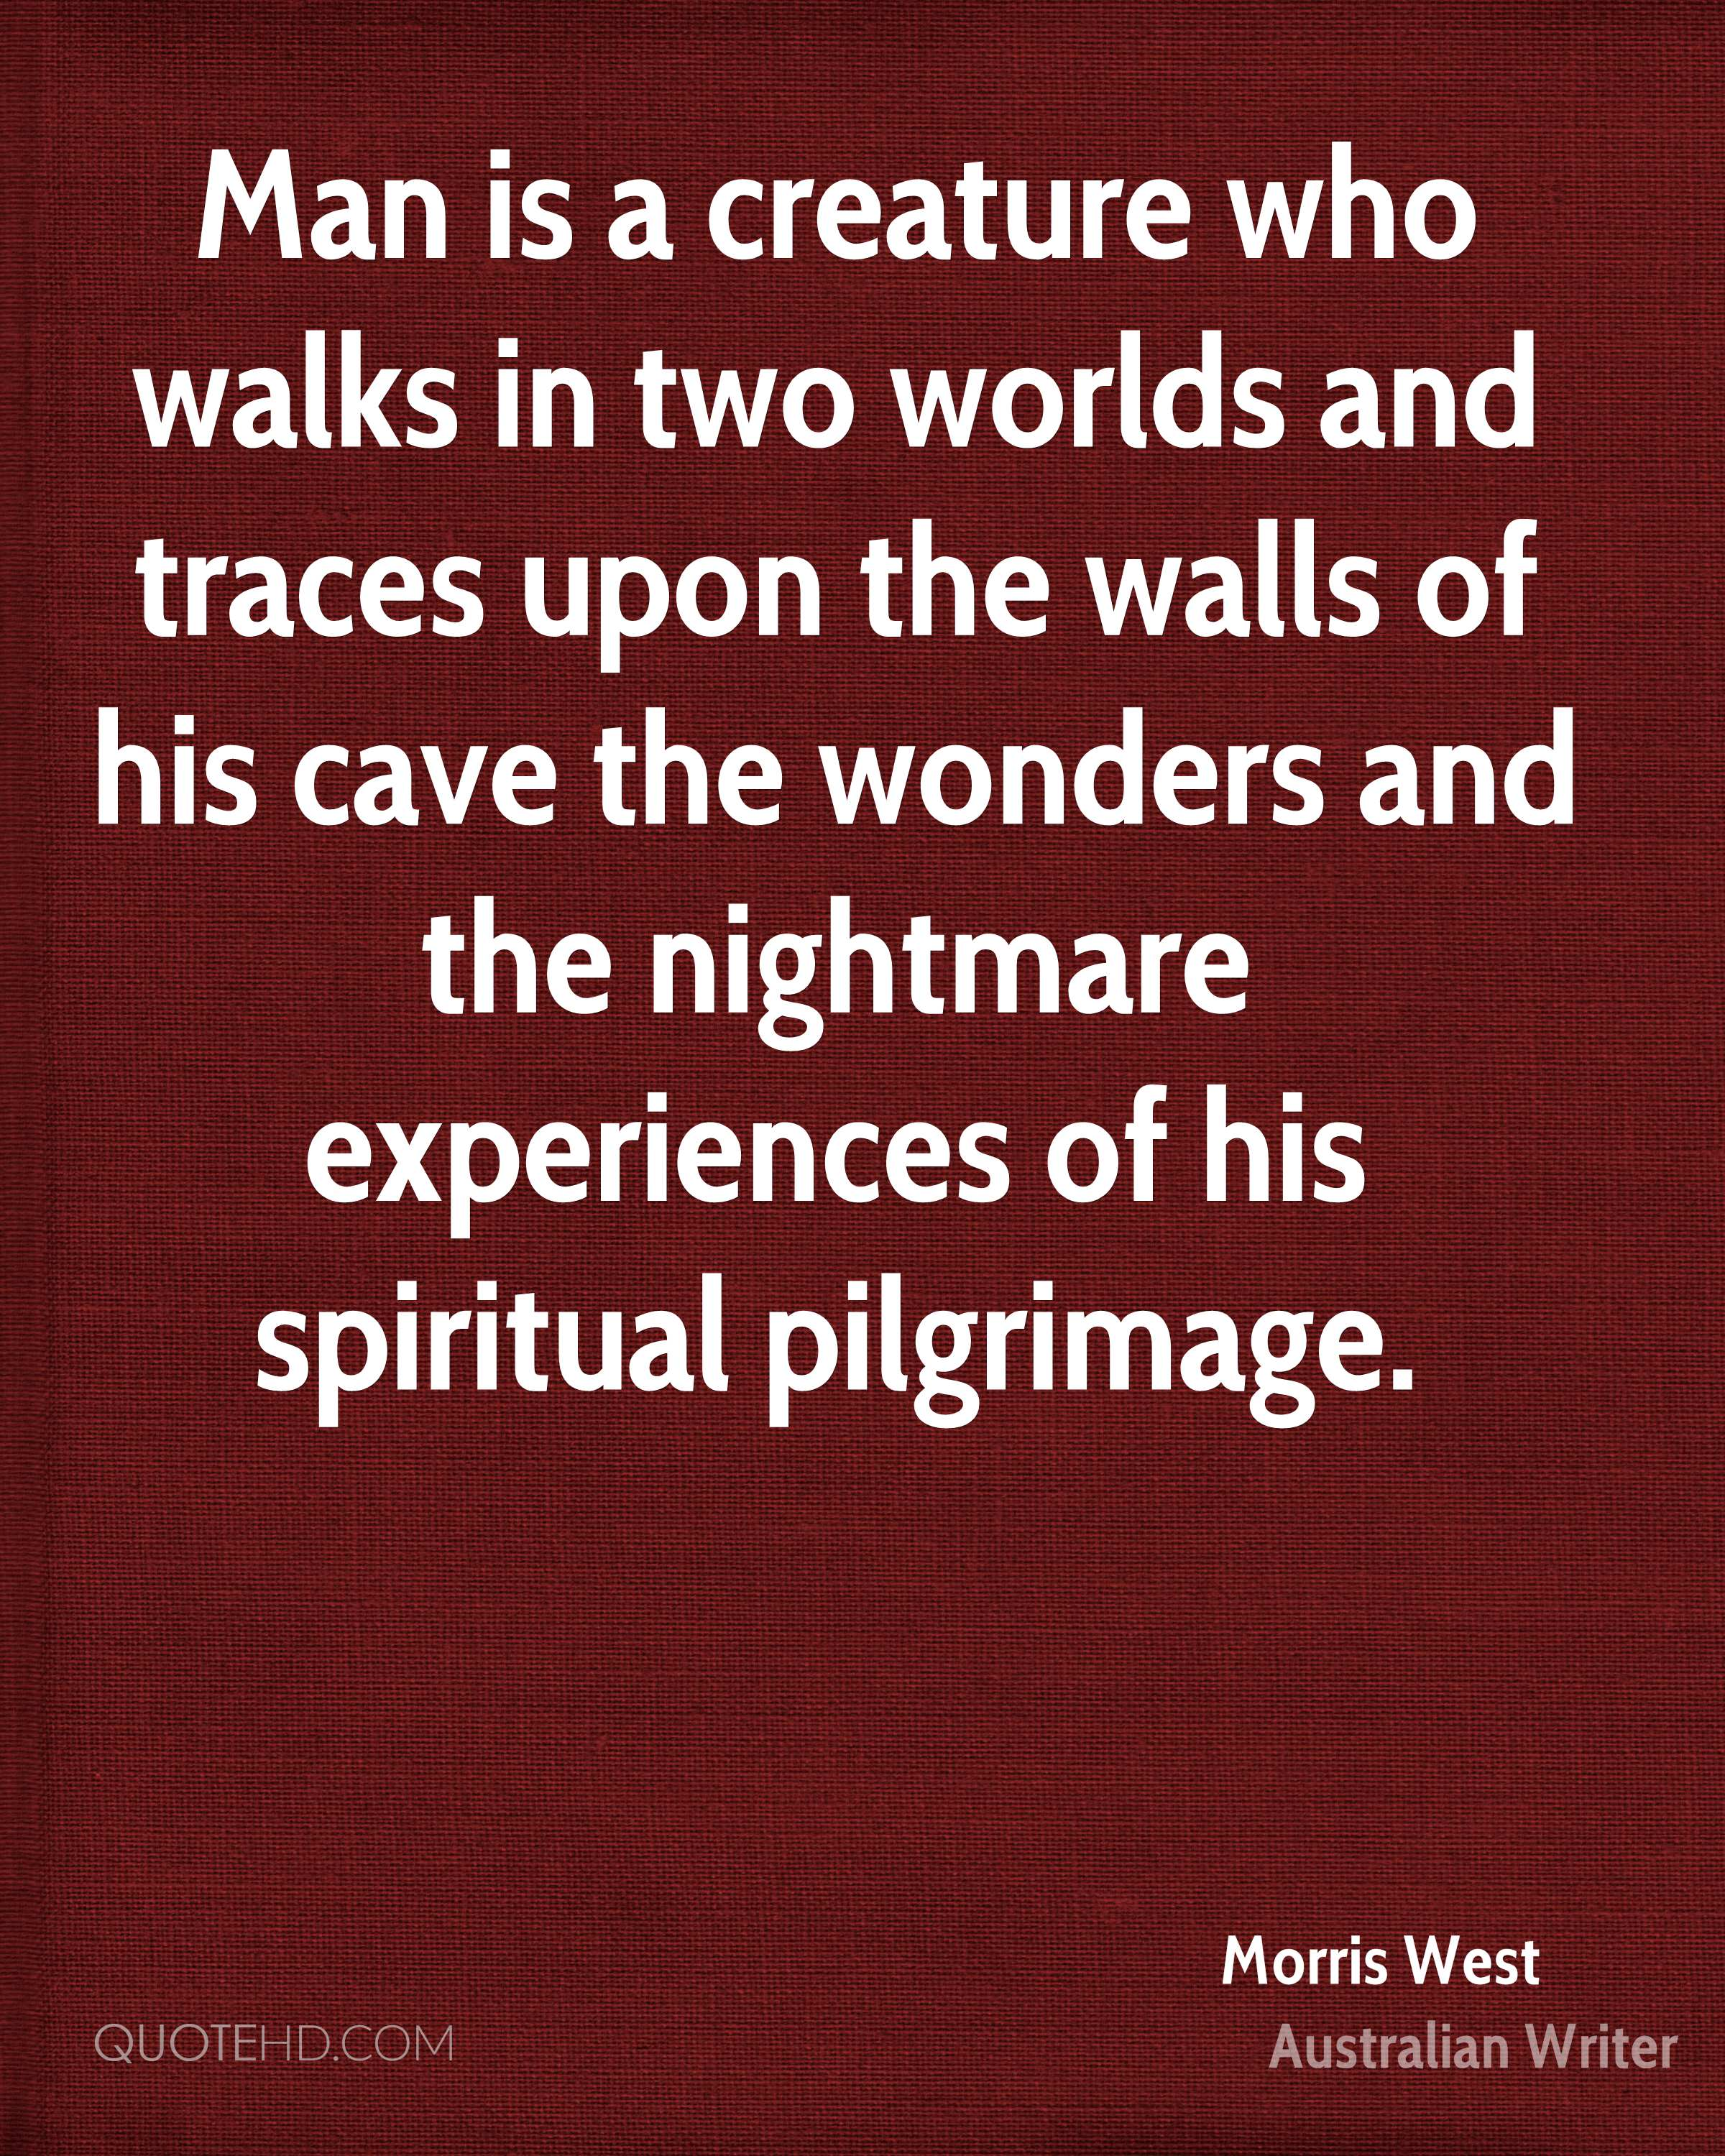 Man is a creature who walks in two worlds and traces upon the walls of his cave the wonders and the nightmare experiences of his spiritual pilgrimage.